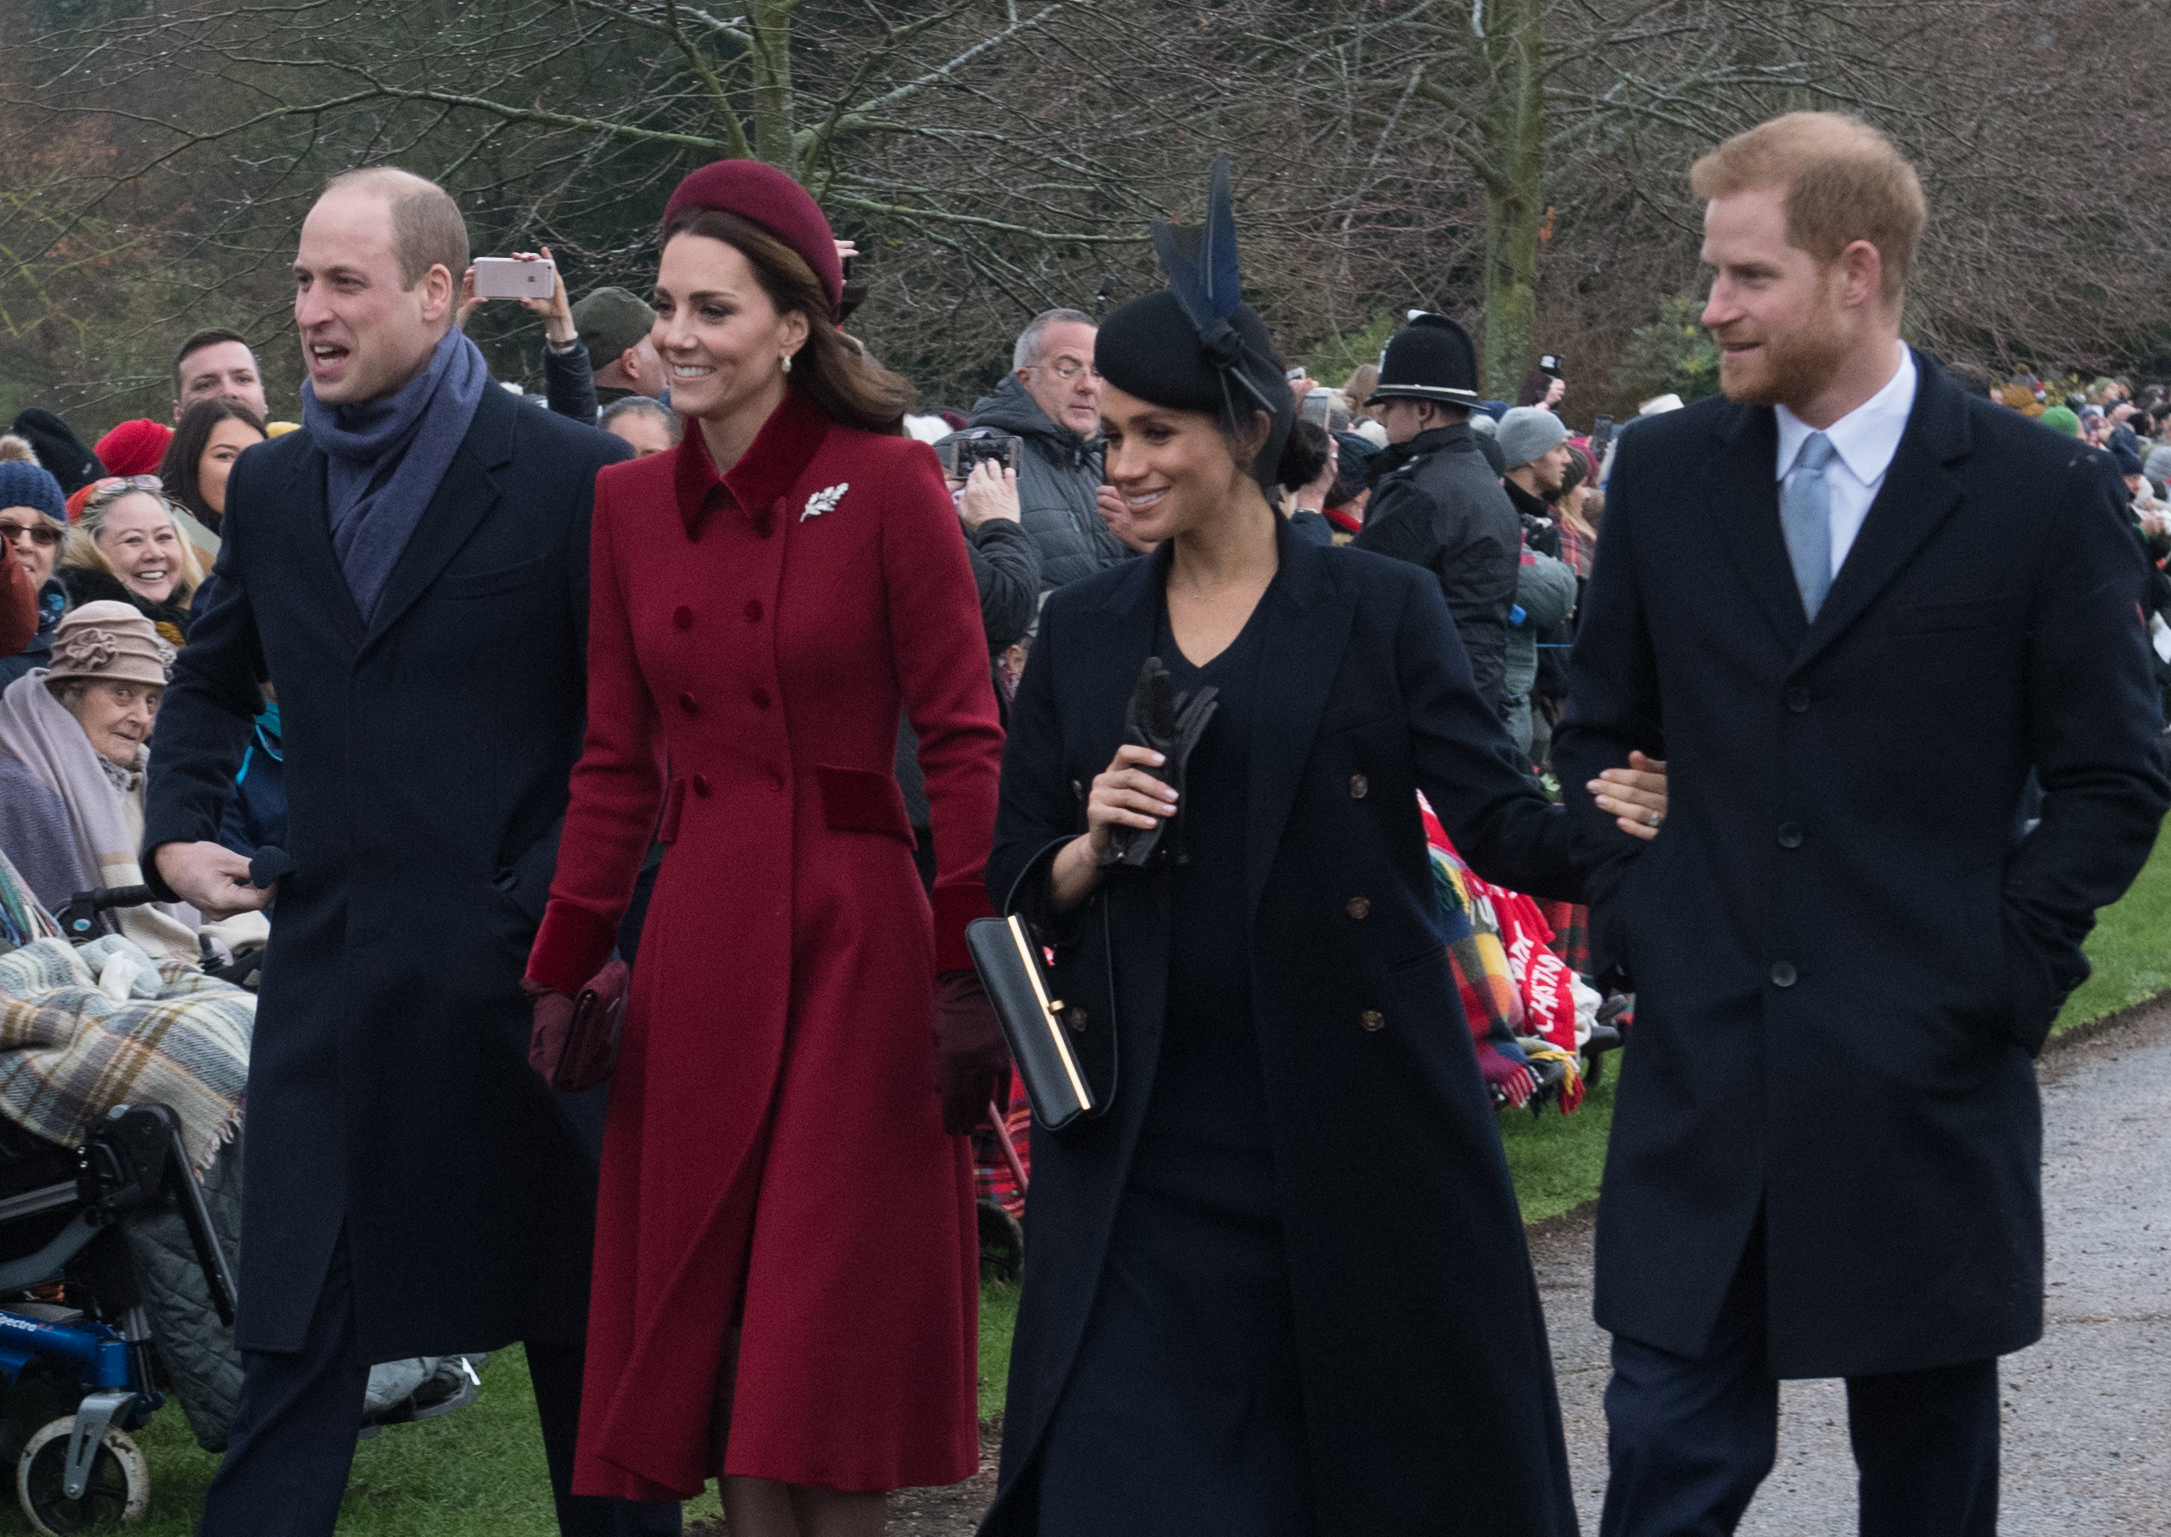 Prince Harry & Meghan Markle Celebrate Engagement Anniversary